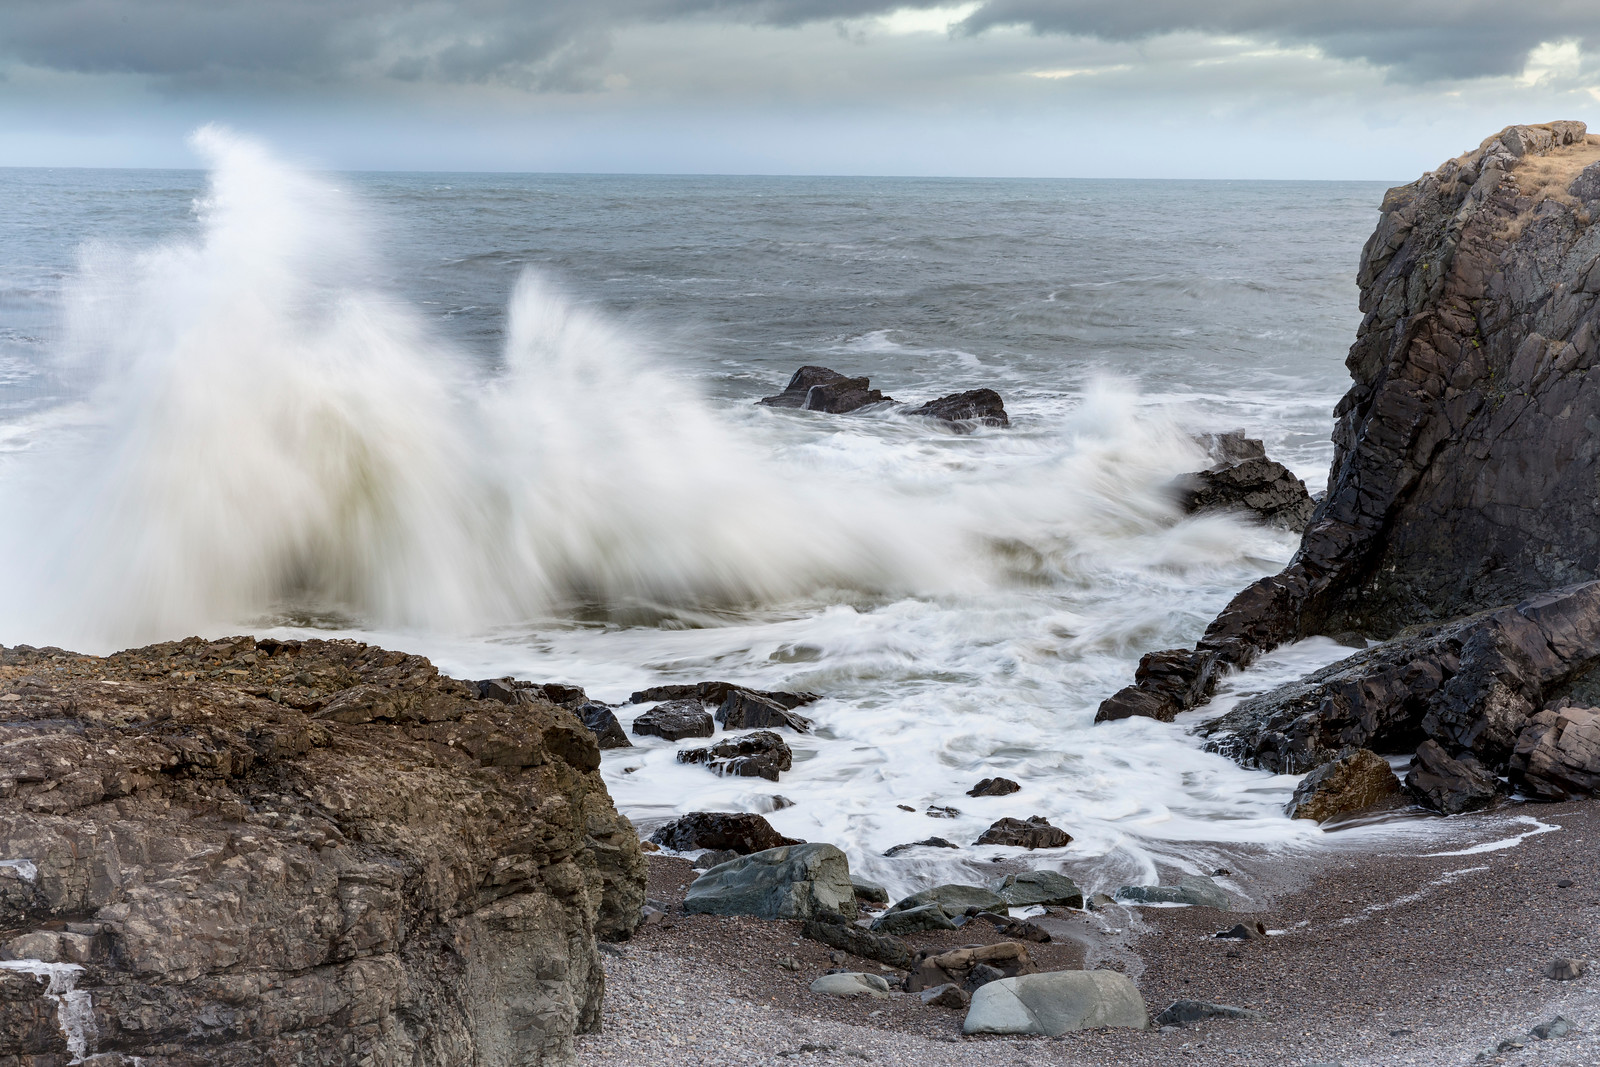 Never underestimate the power of the Atlantic as the waves crash onto the beach